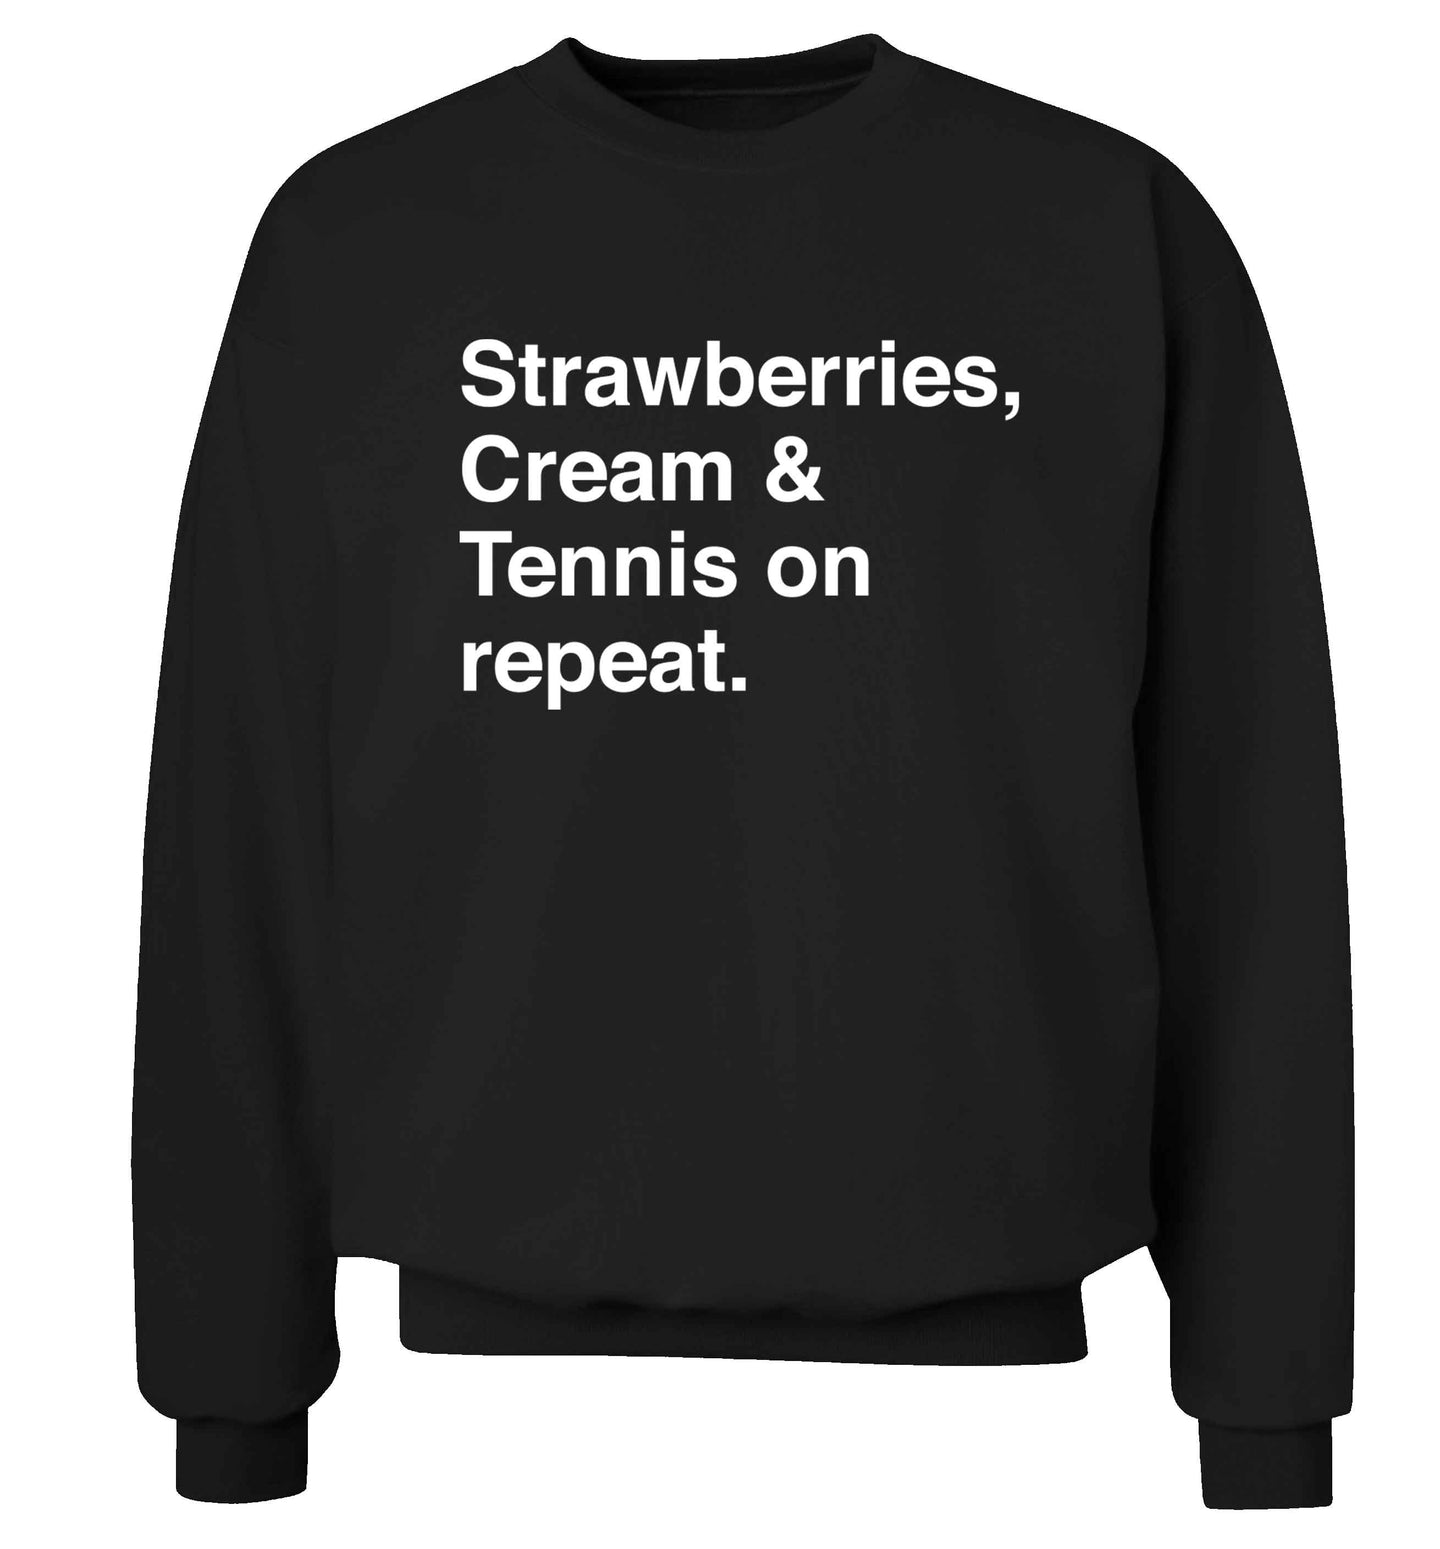 Strawberries, cream and tennis on repeat Adult's unisex black Sweater 2XL